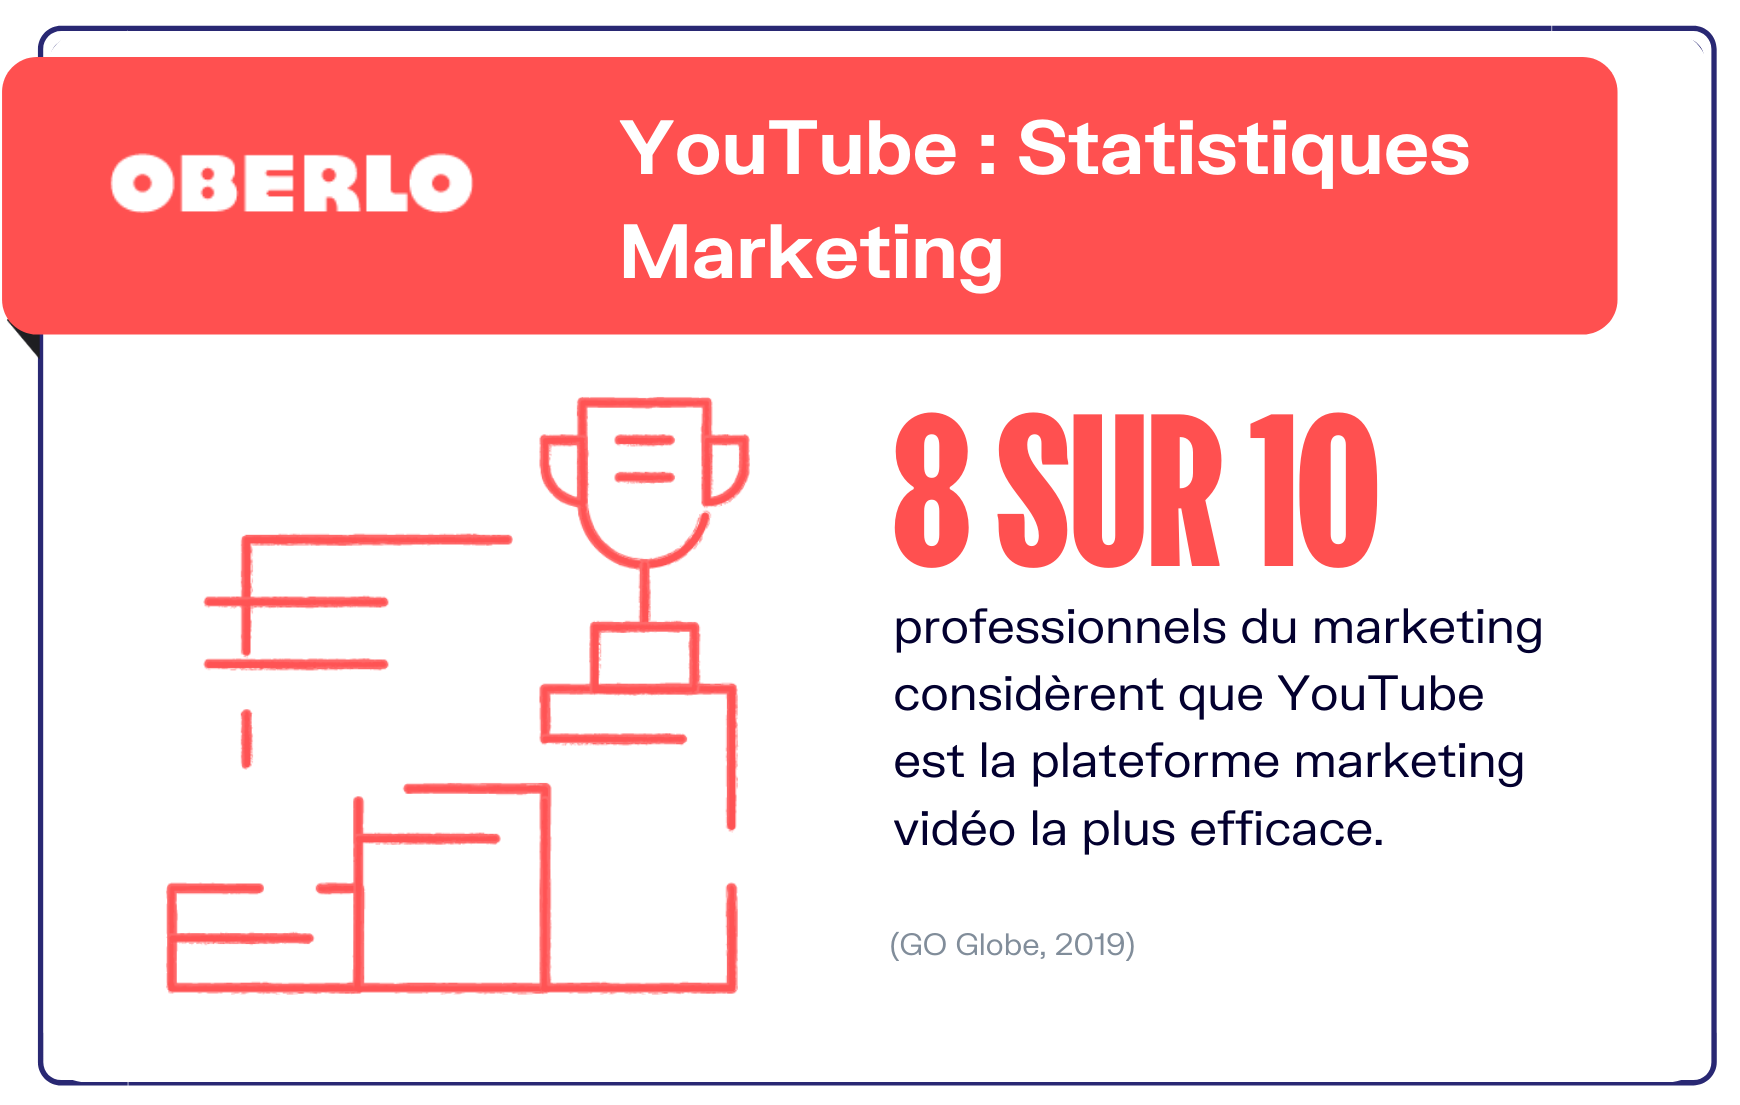 Youtube statistiques webmarketing